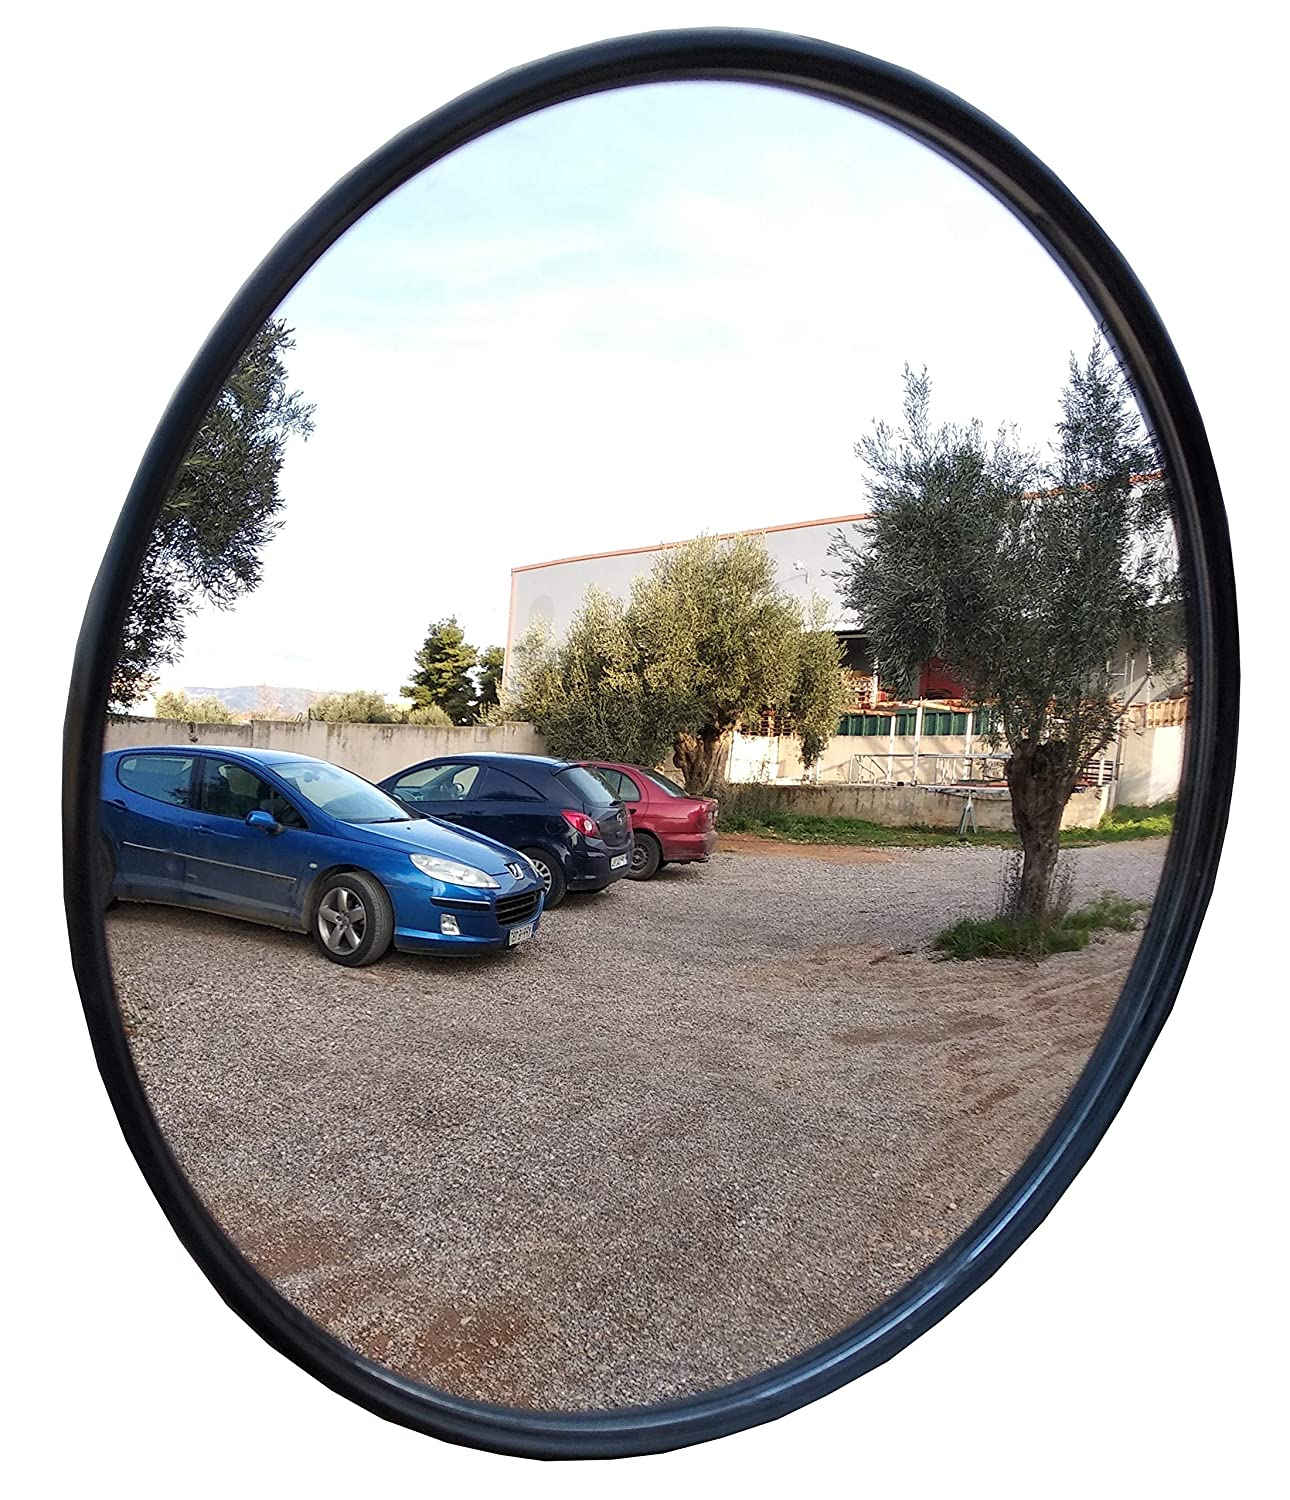 30cm // 12in Cocoarm Traffic Mirror Wide Angle Driveway Road Security Convex PC Mirror Indoor Outdoor Road Traffic Mirror Mounting Hardware Accessories Road Safety Shop Security